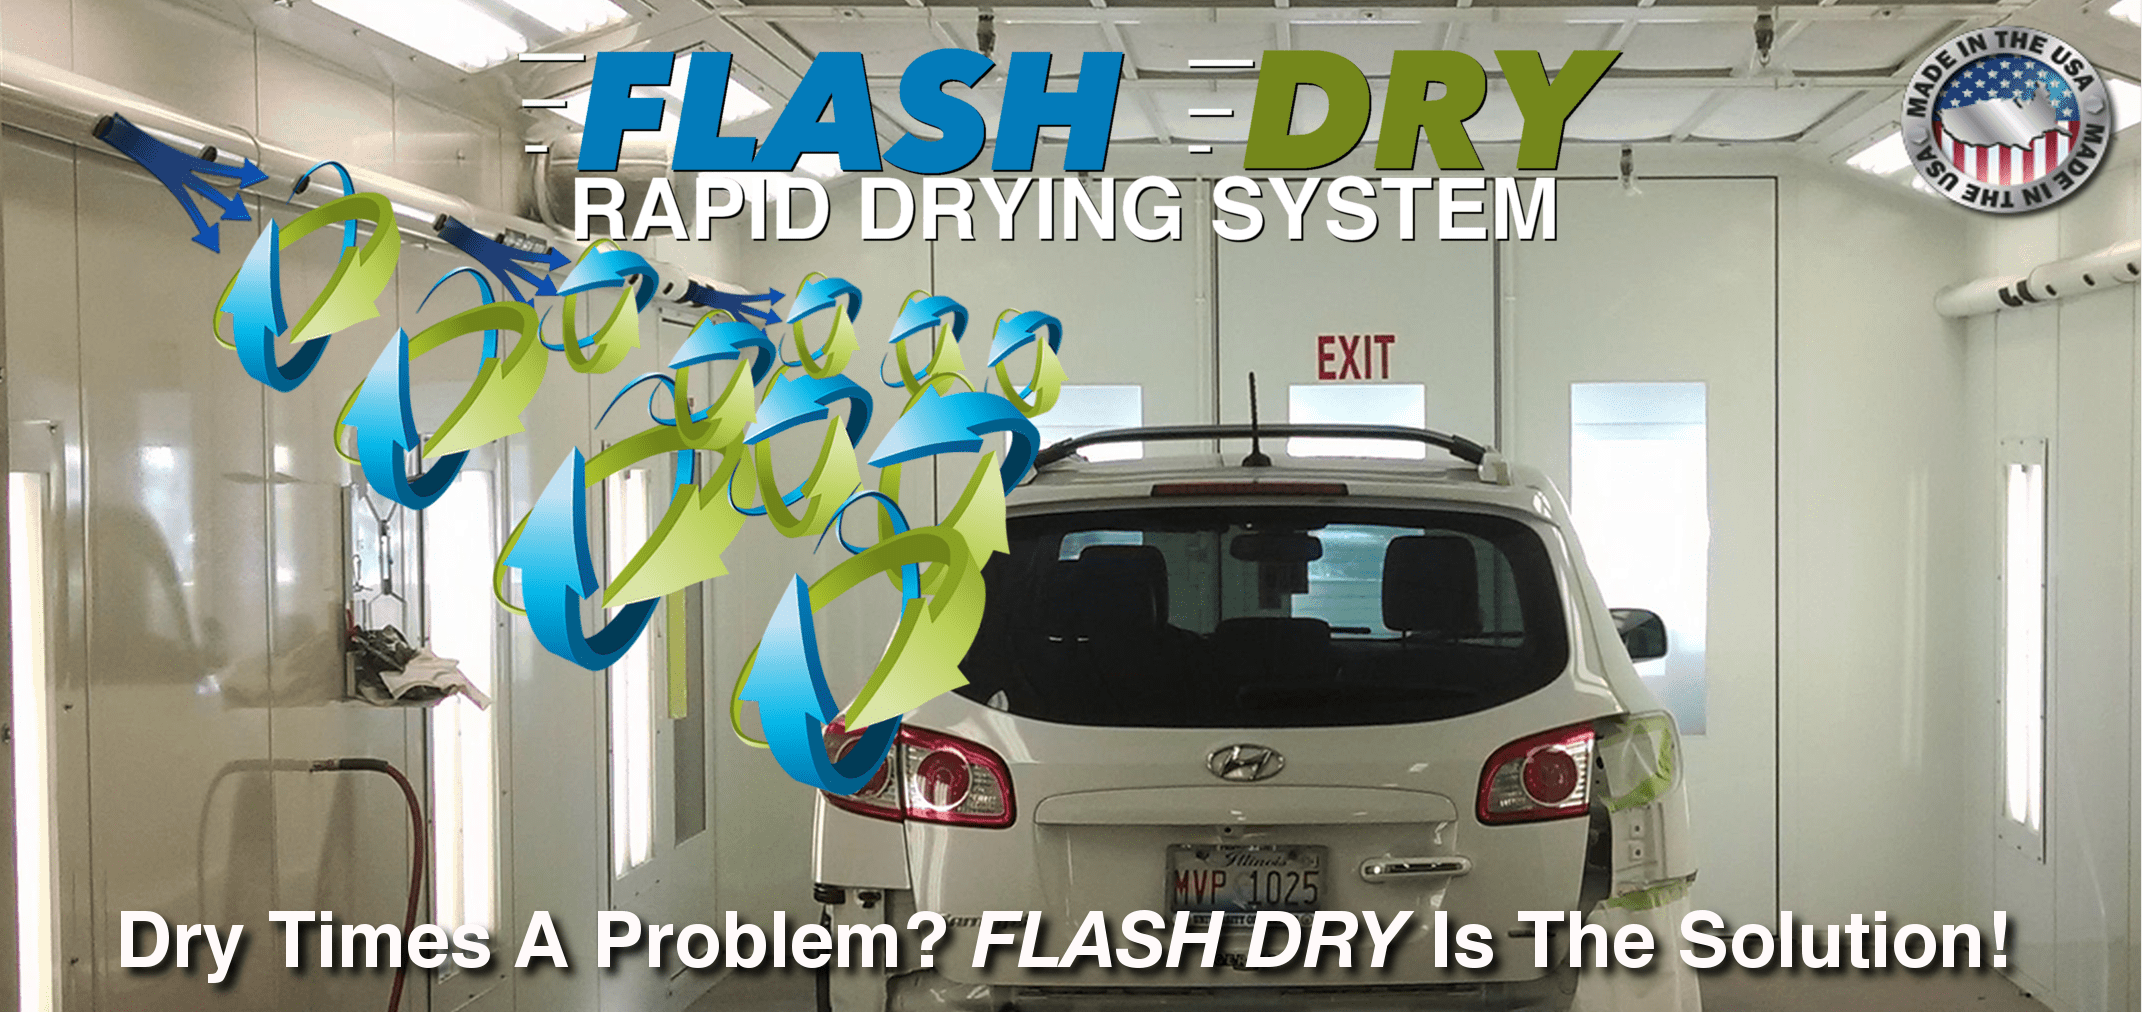 Flash Dry - Rapid Drying System